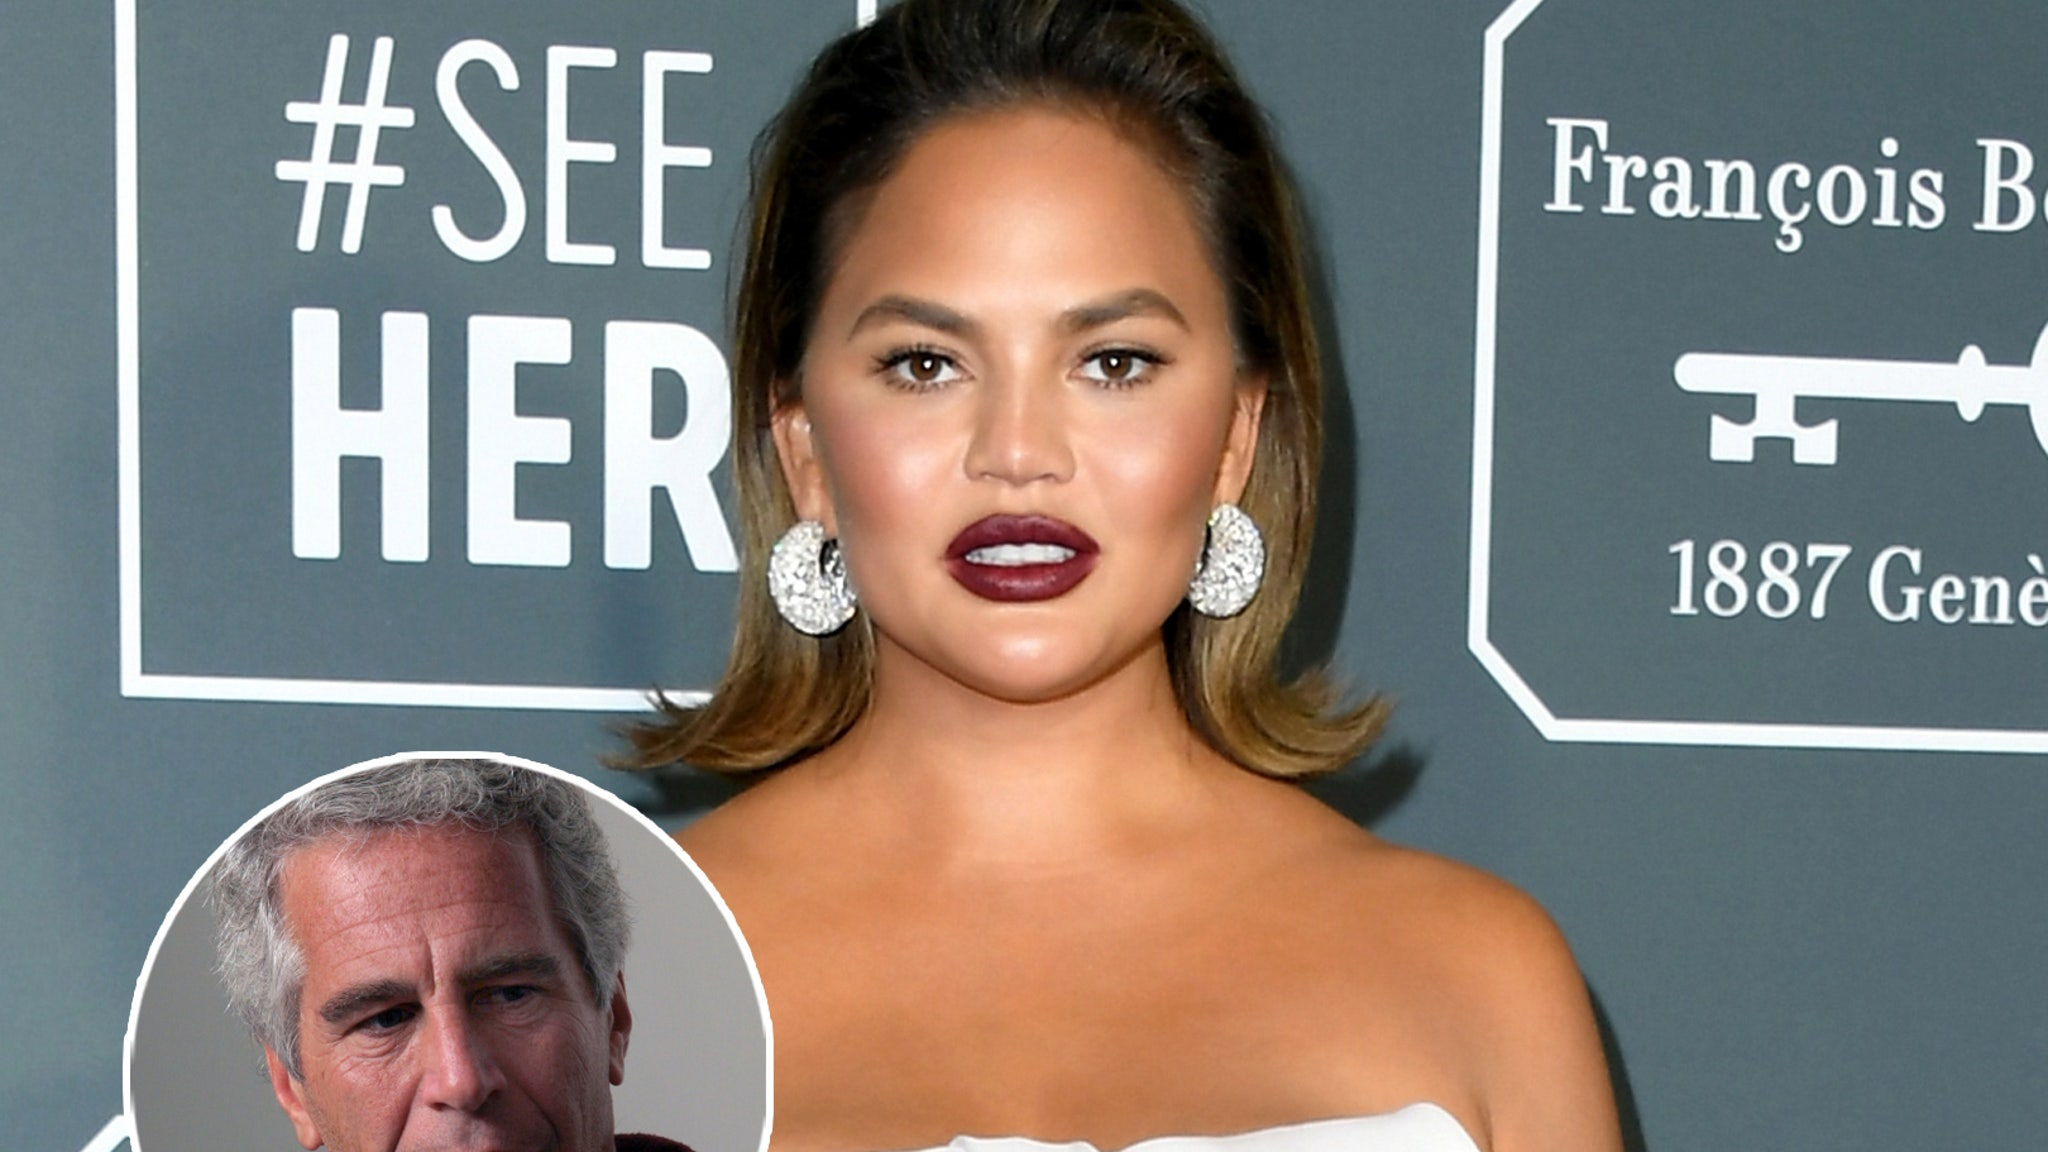 Chrissy Teigen Slams Accusations of Being on Jeffrey Epstein's Flight Log